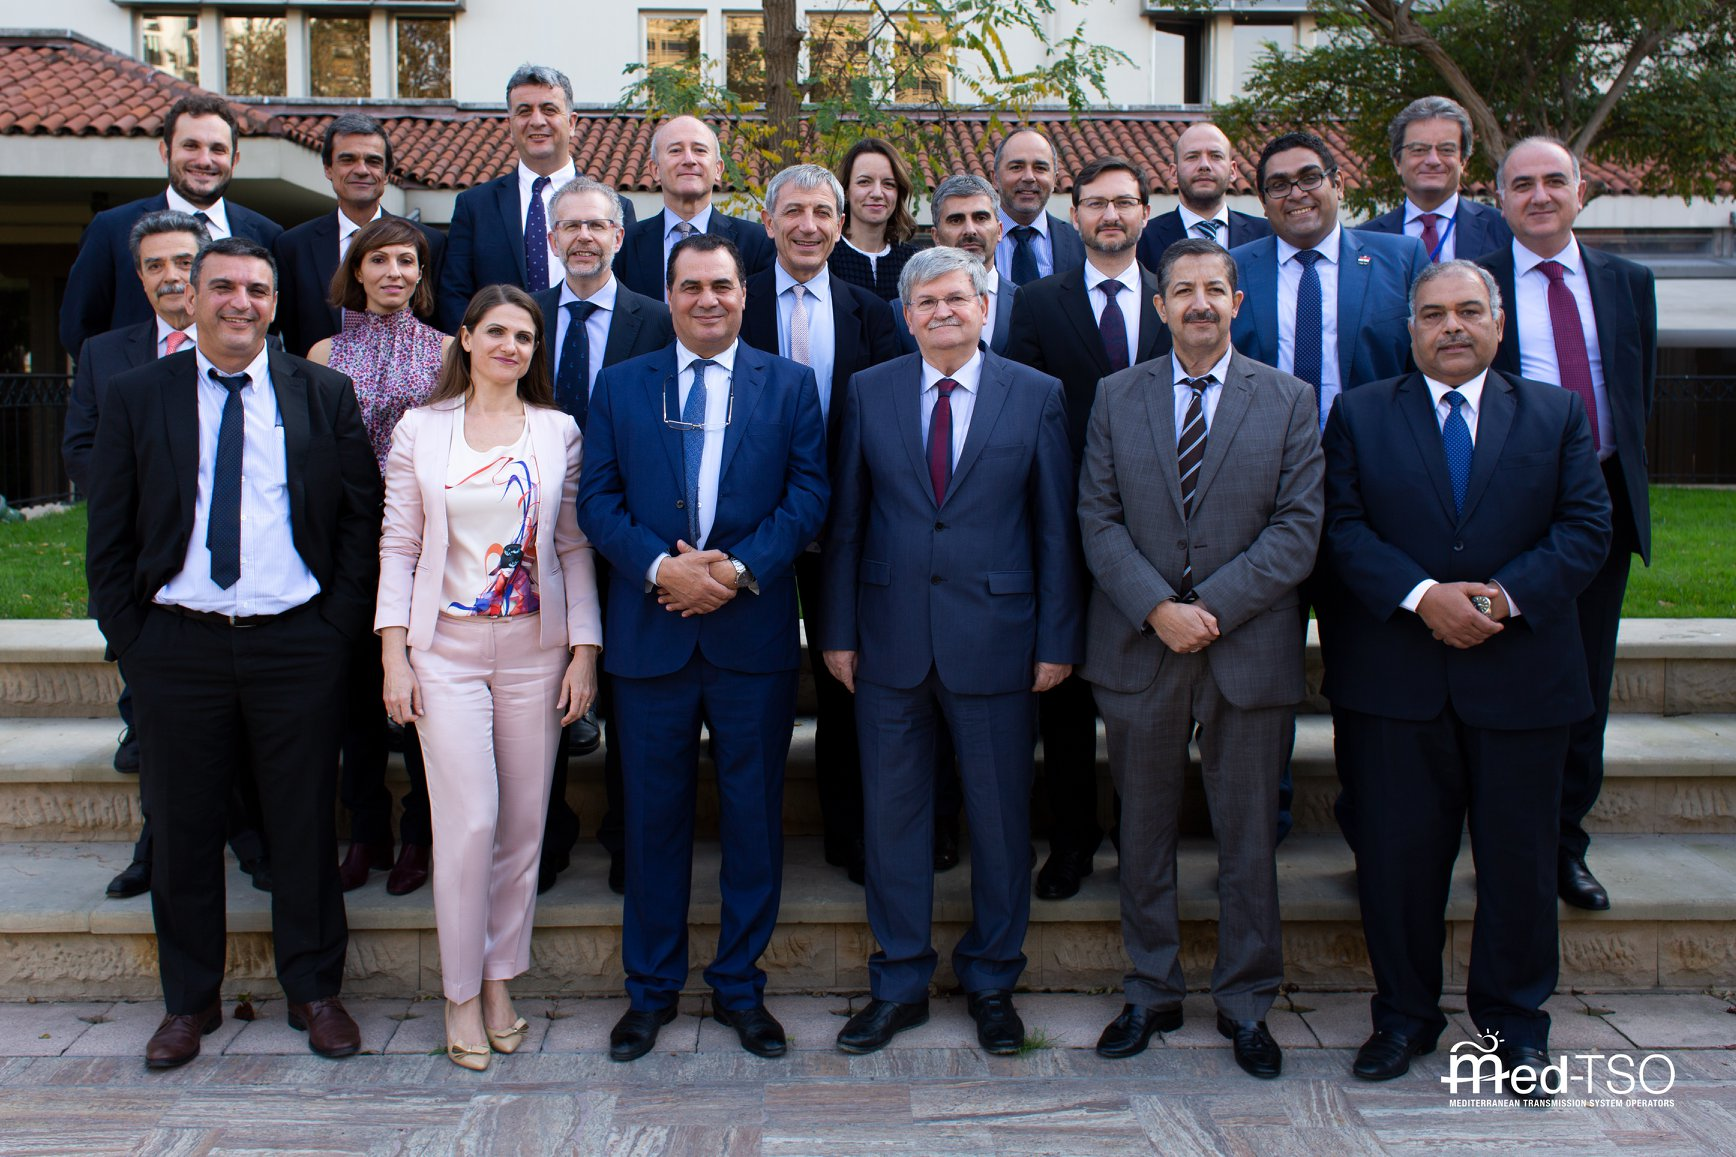 Med-TSO holds its General Assembly in Turkey